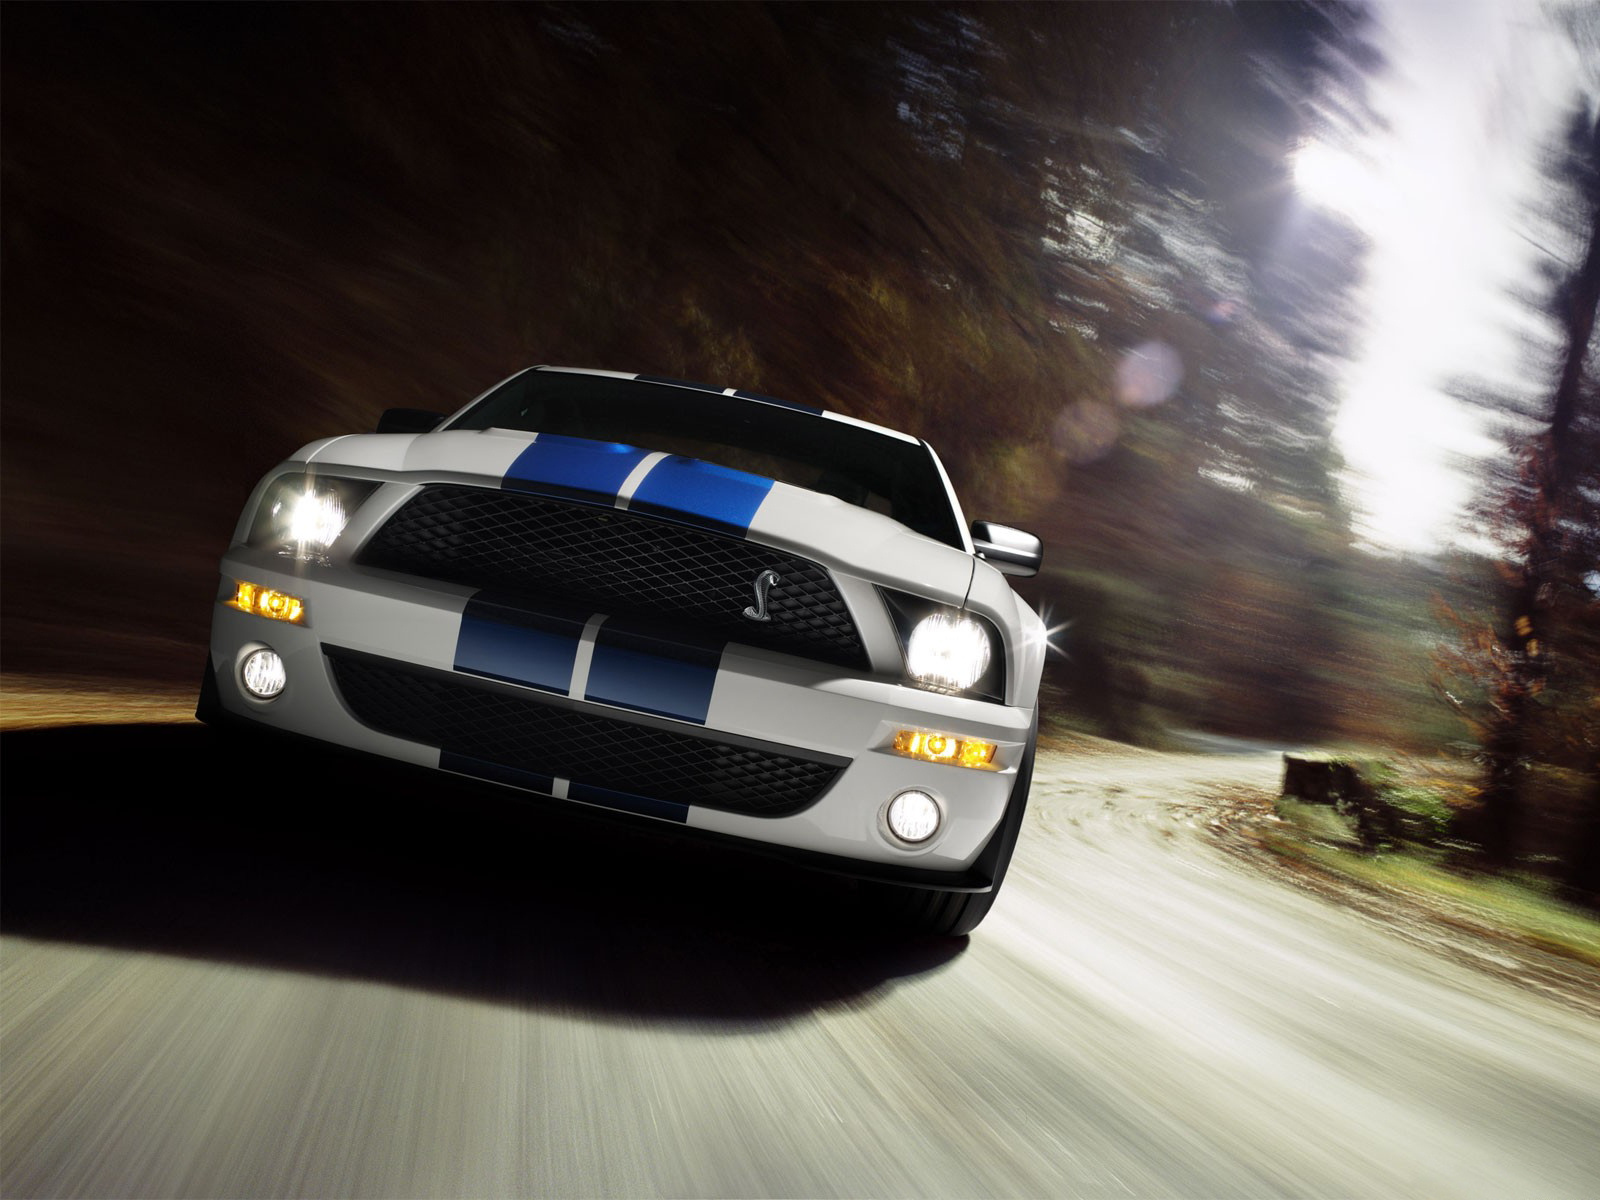 10 Cars Backgrounds Wallpapers HD Download 1600x1200